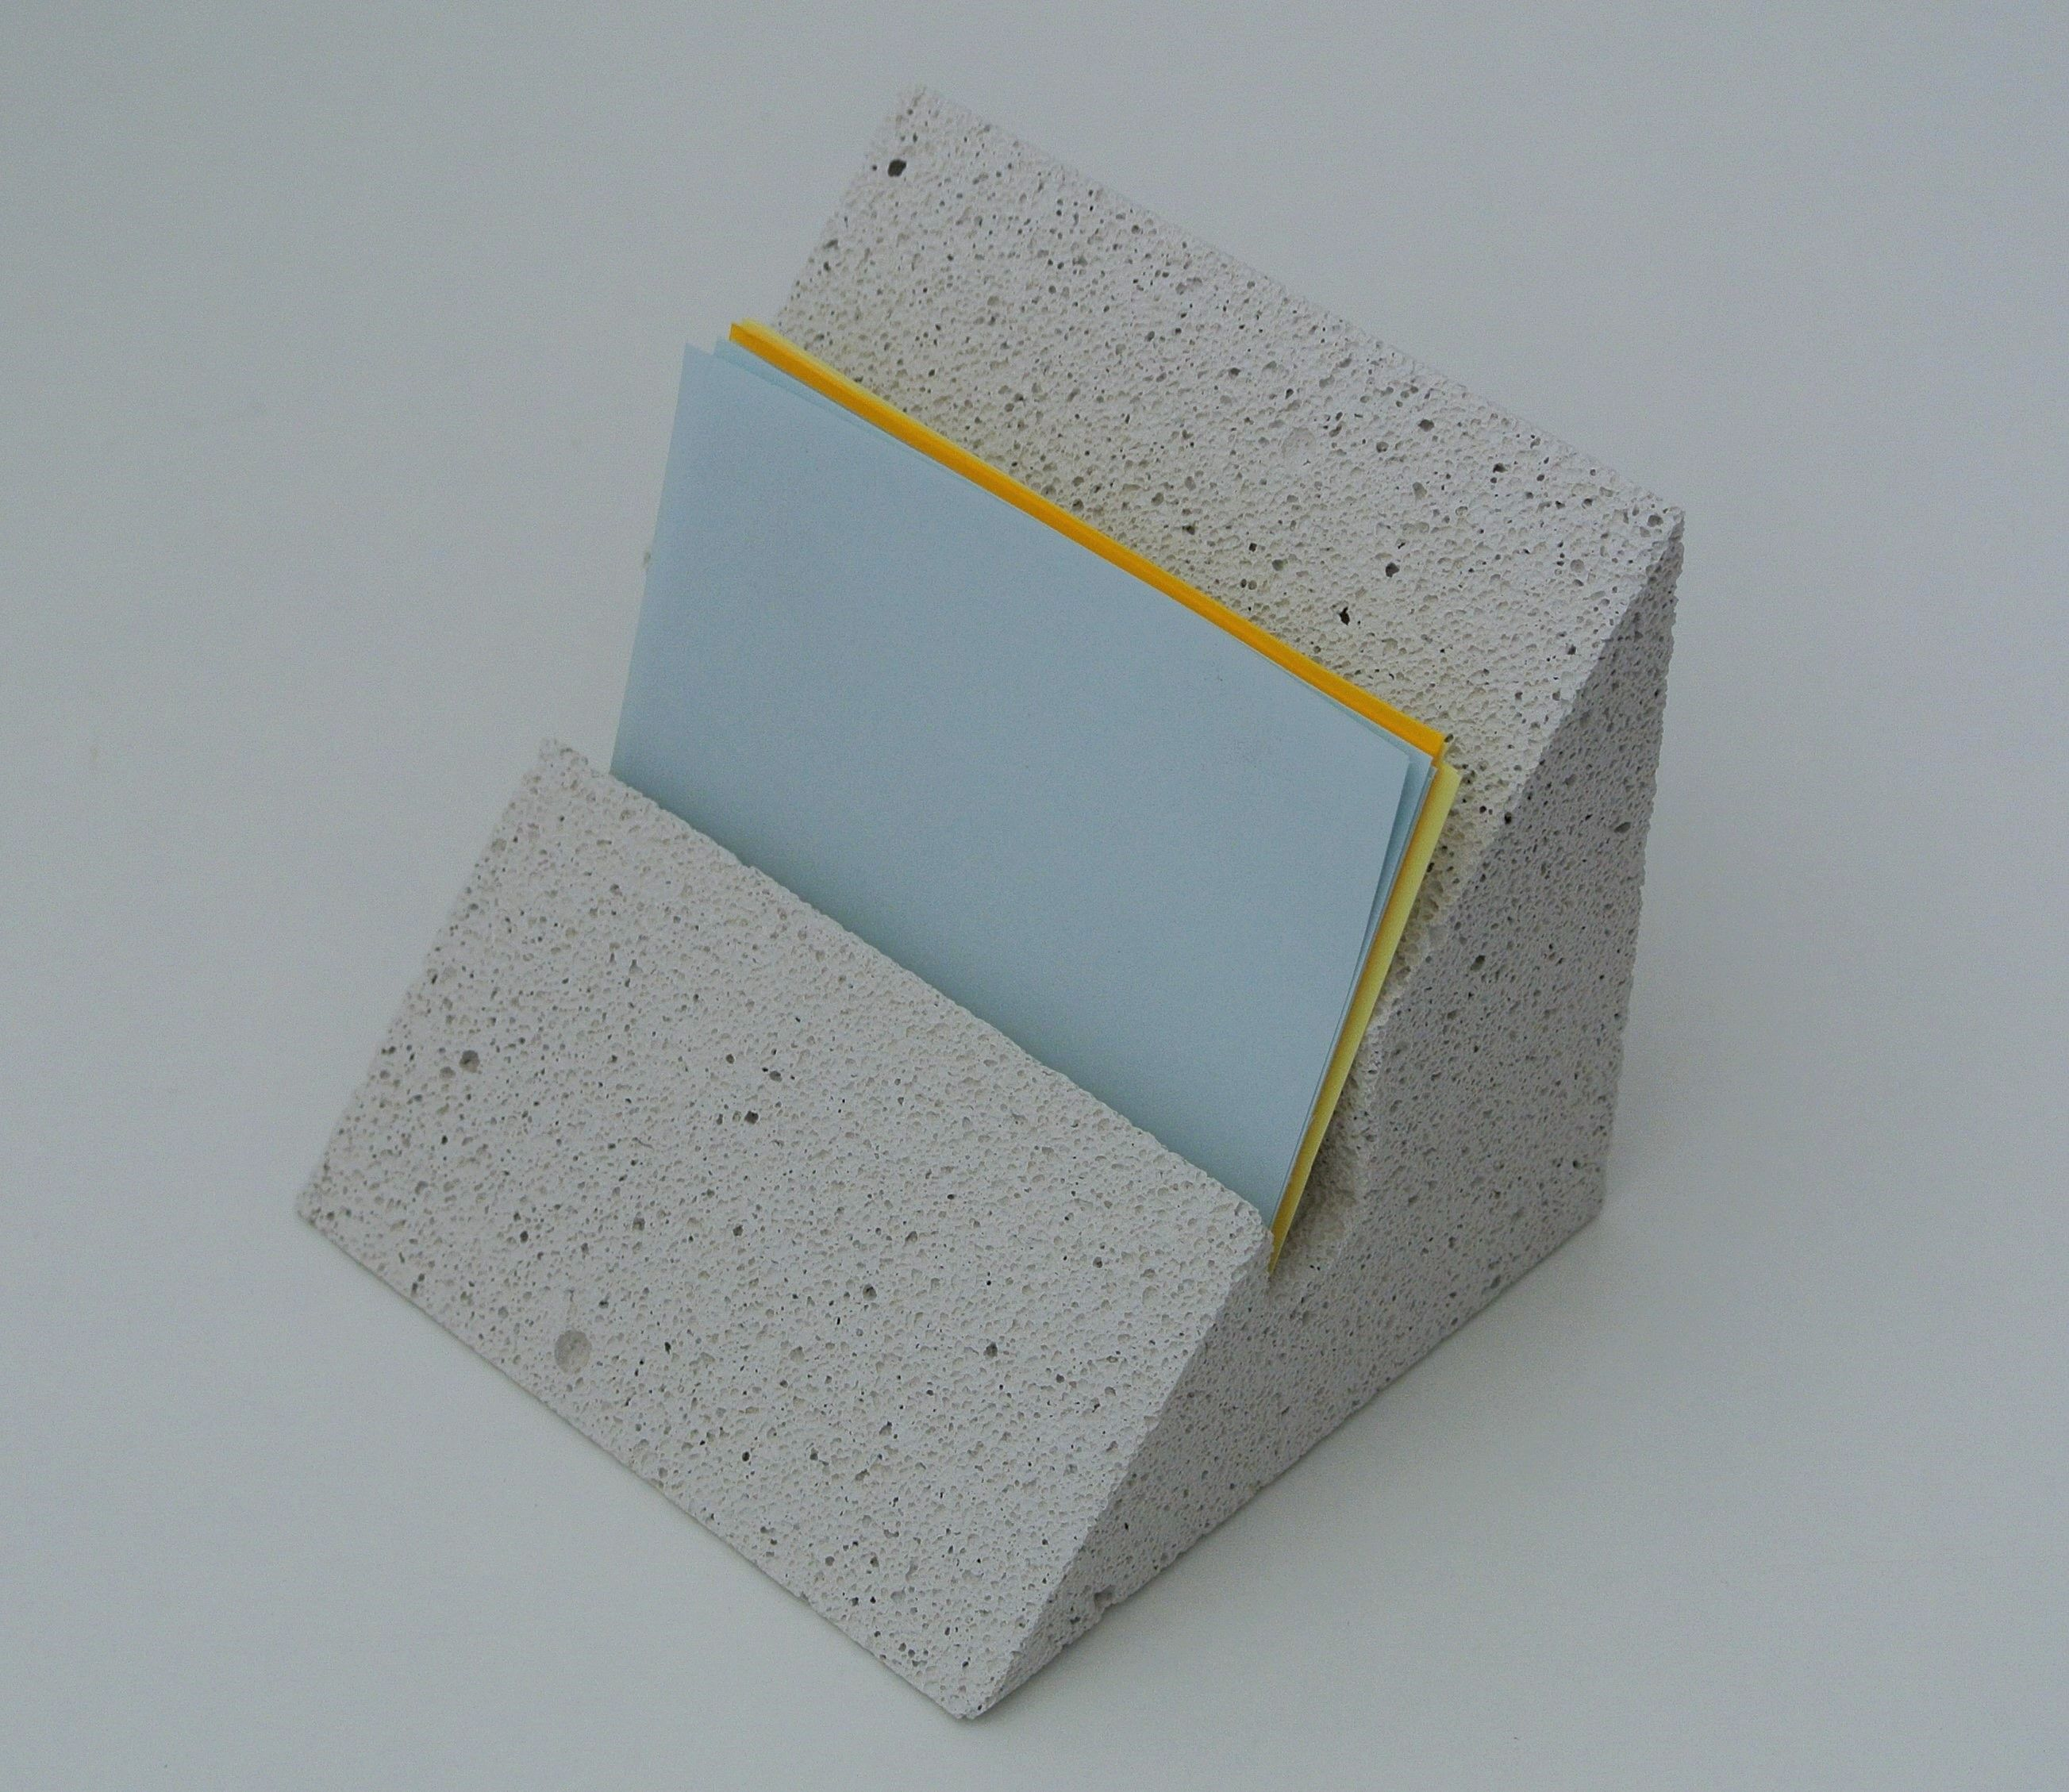 Level - aerated concrete business card holder from Ethereal Concrete ...